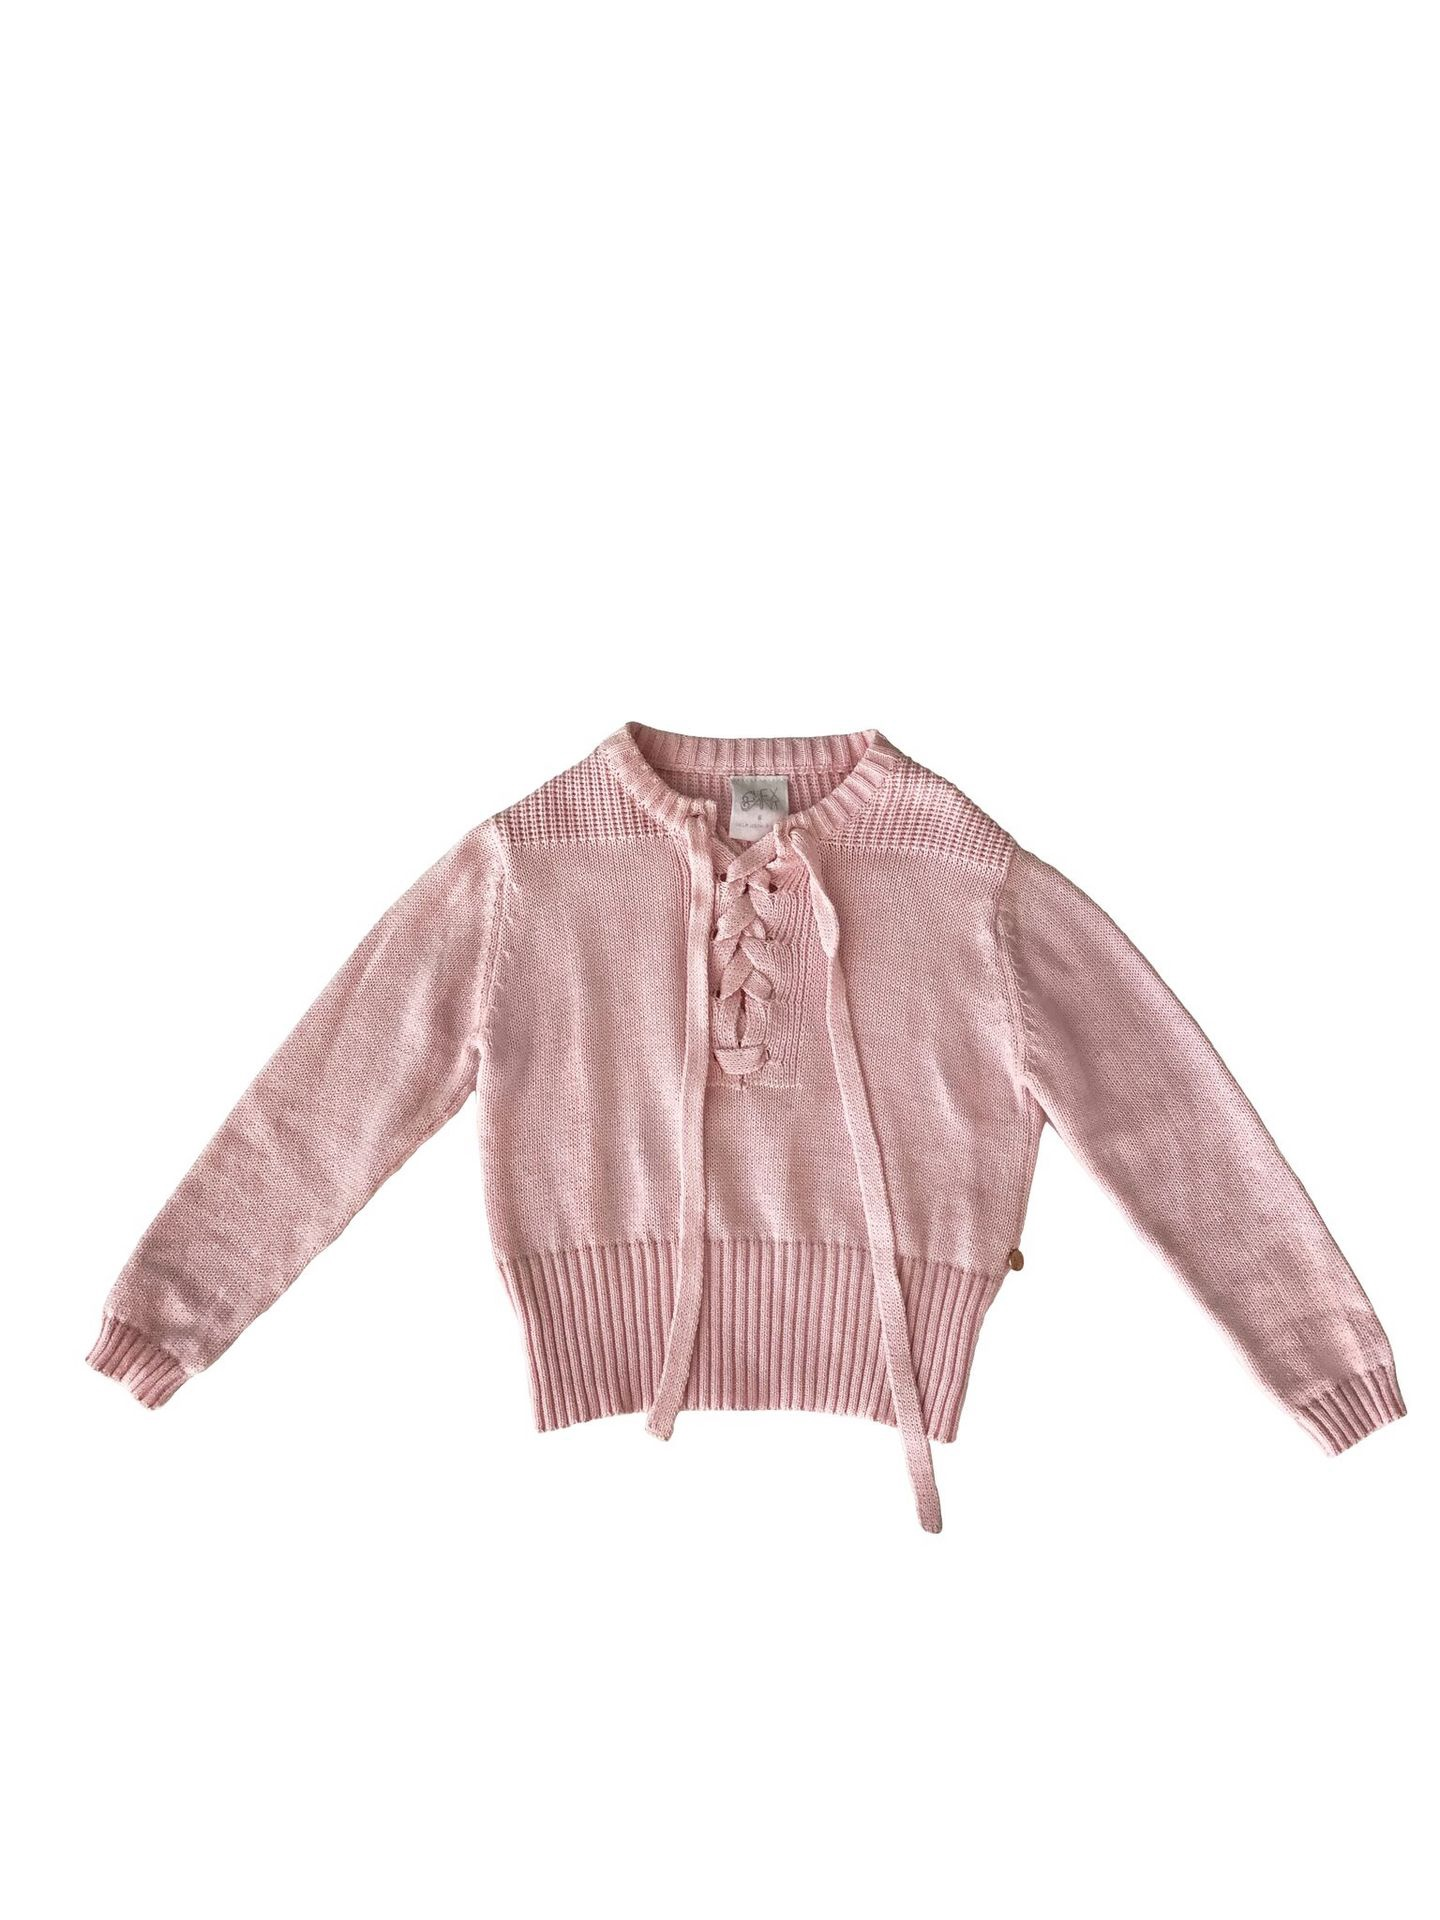 Alex and Ant Tie Up Sweater Pink